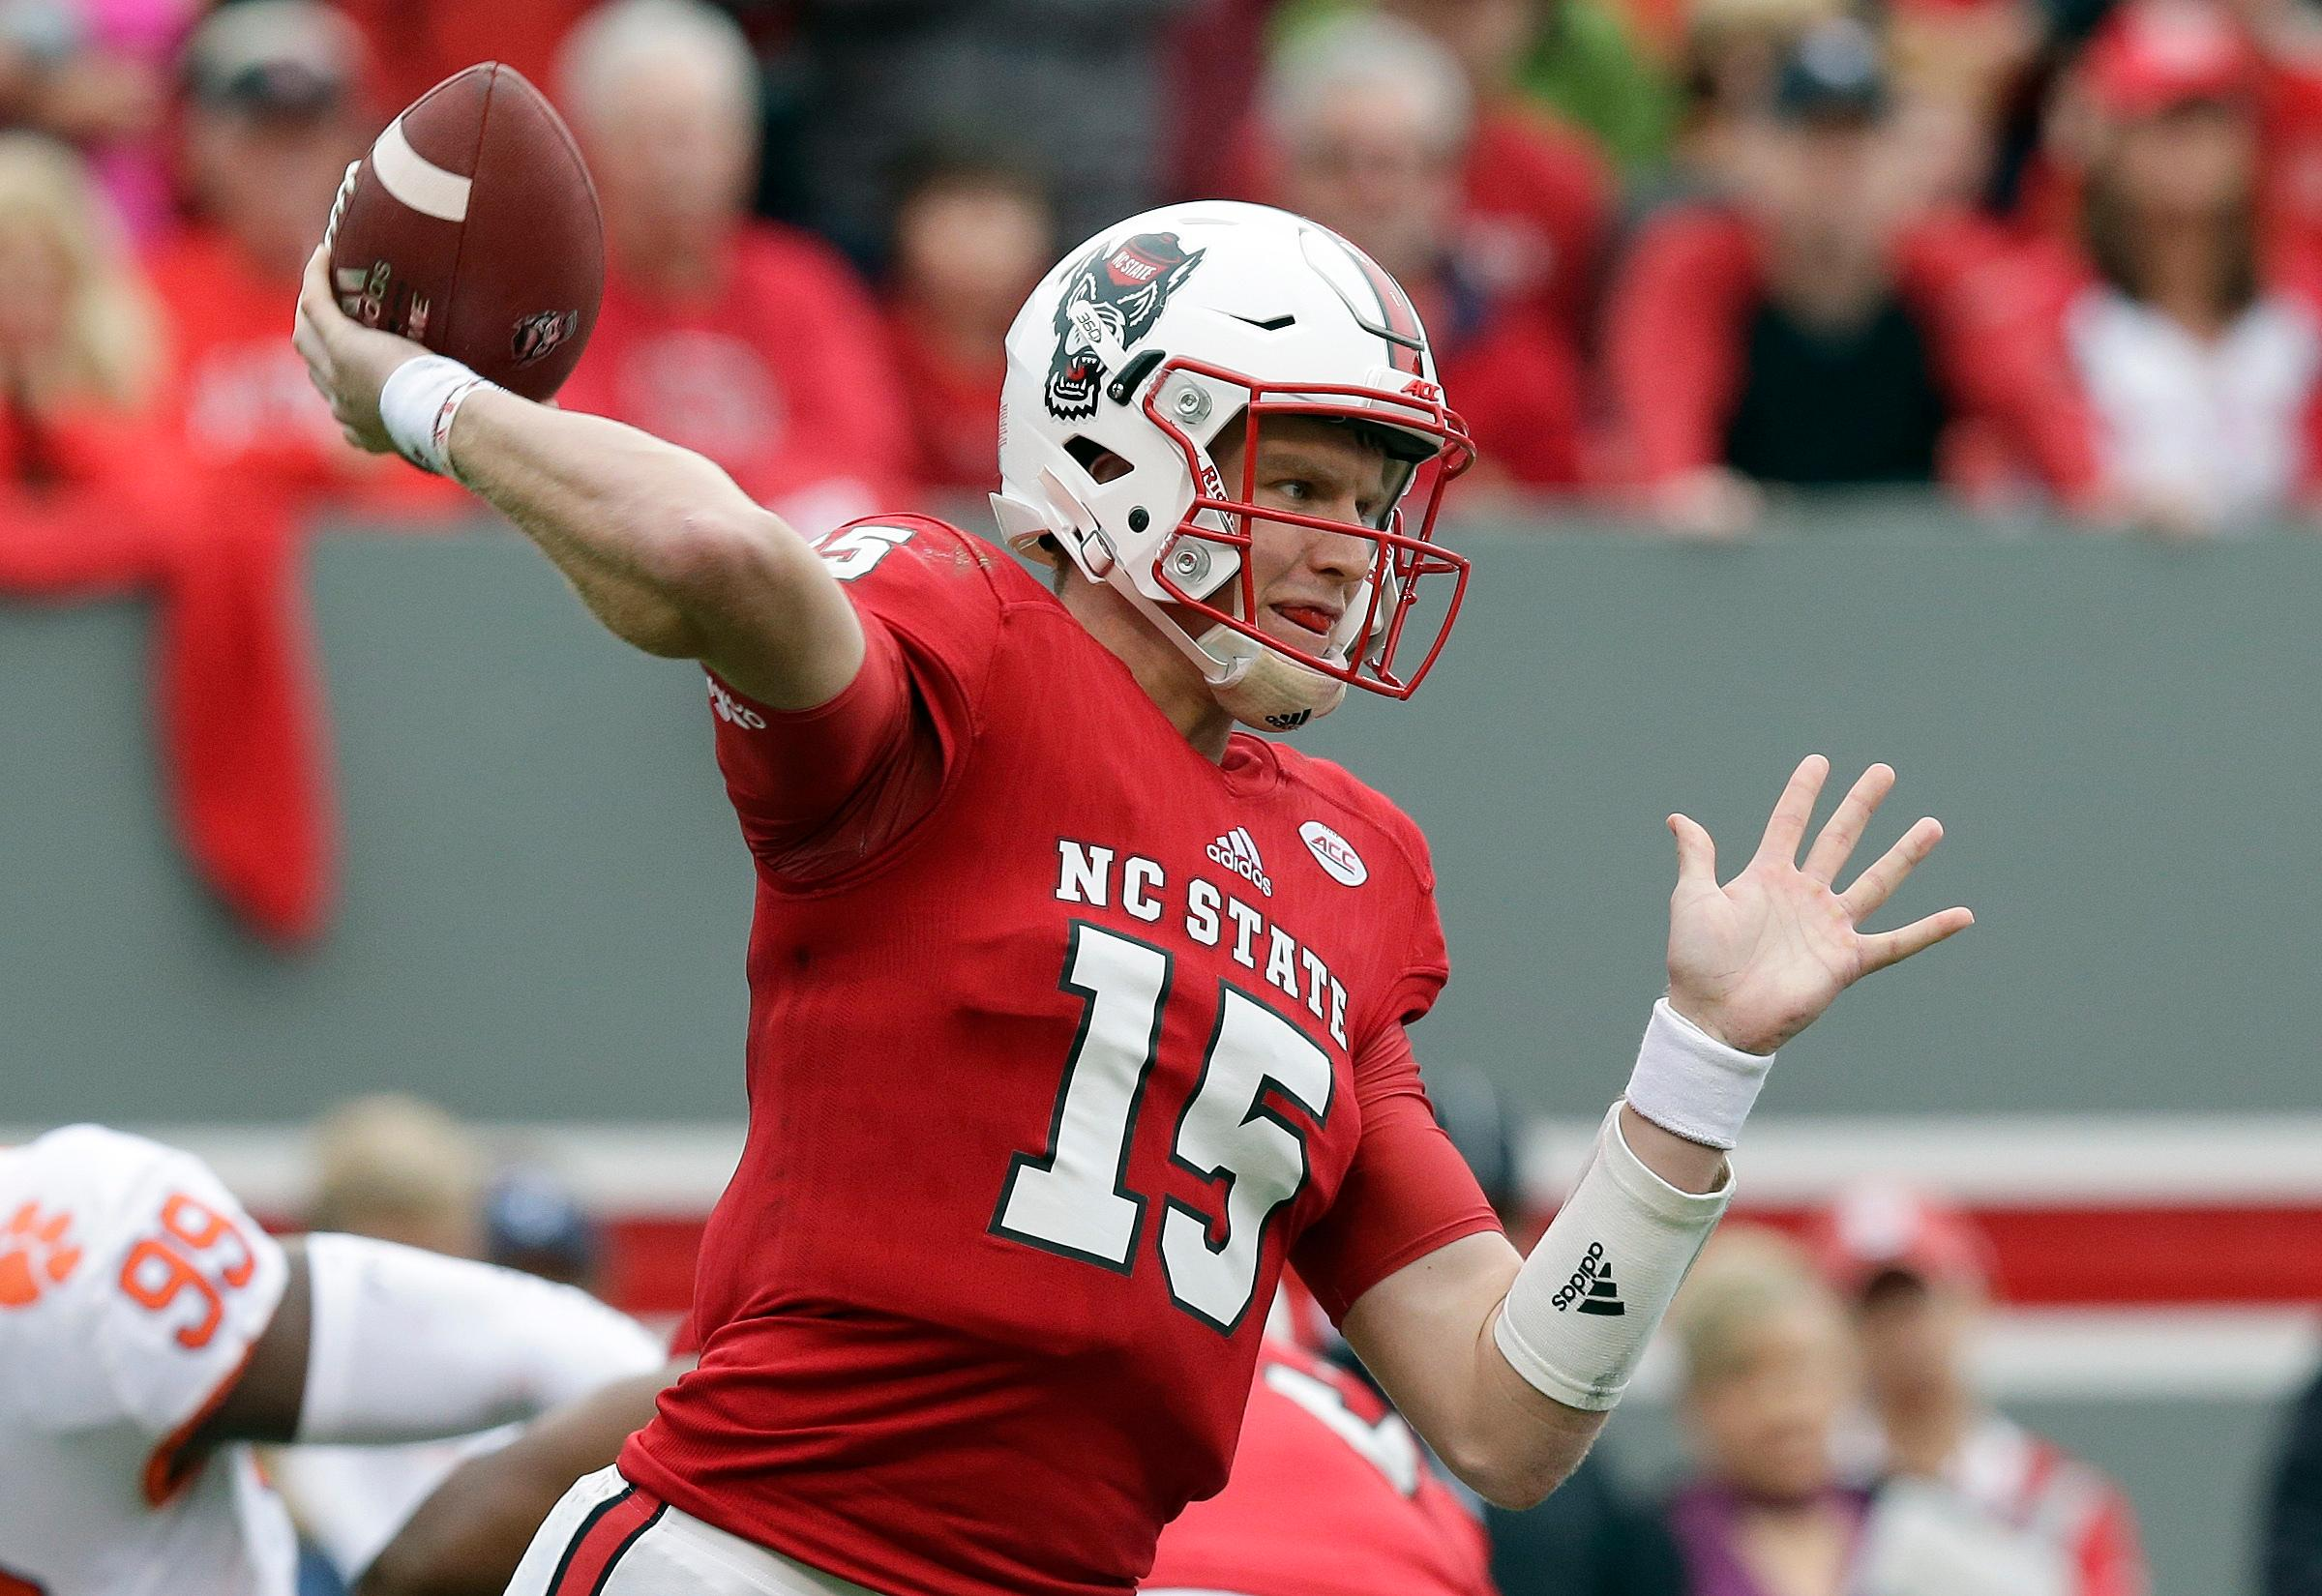 FILE - The Wolfpack (8-4) is seeking the second-most wins in school history, and trying to stay in the final College Football Playoff rankings. N.C. State was No. 24 going into bowl season. (AP Photo/Gerry Broome)